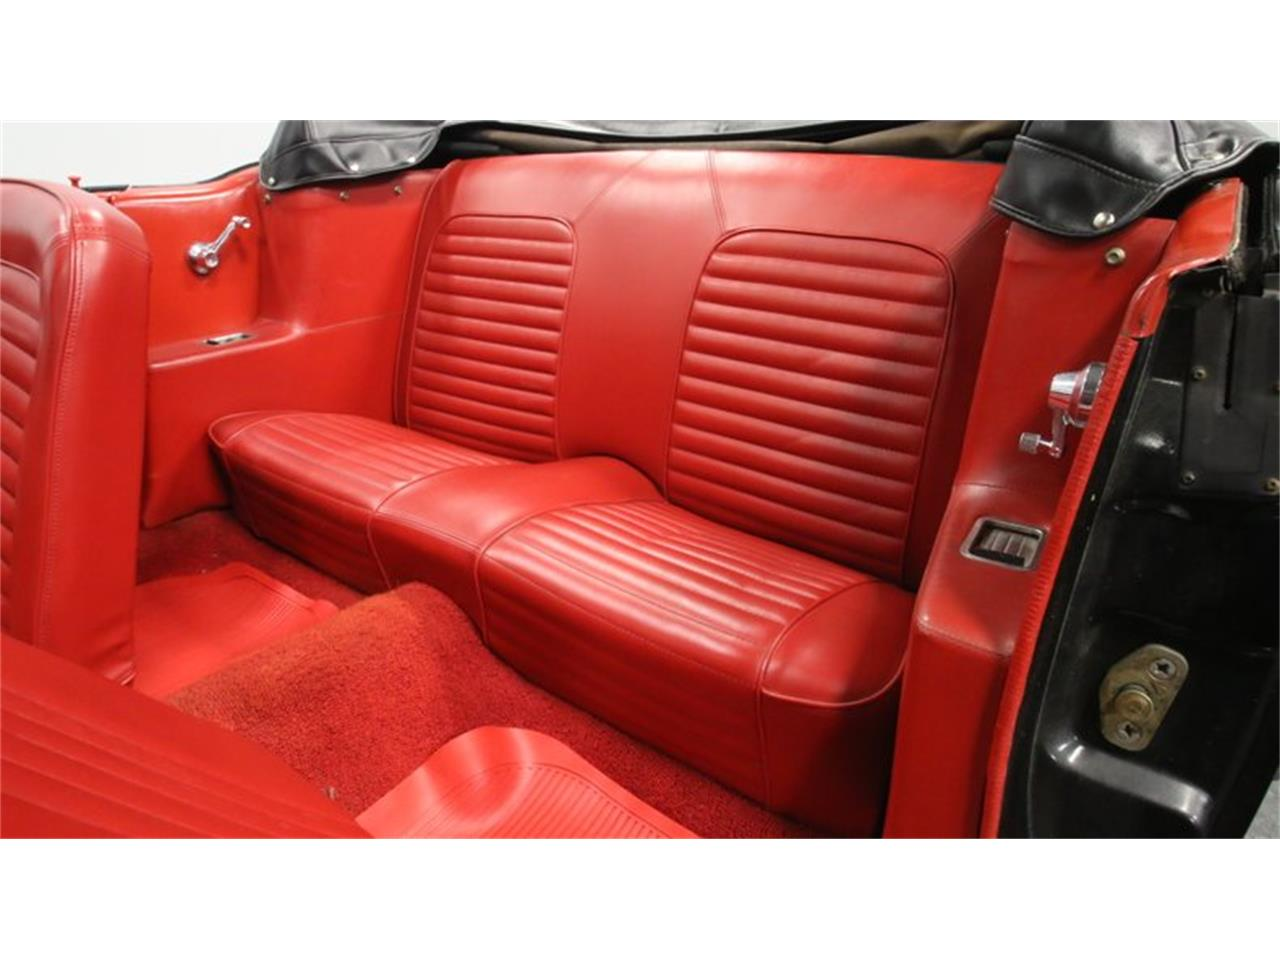 Large Picture of '64 Mustang located in Lithia Springs Georgia - $28,995.00 - QA2K